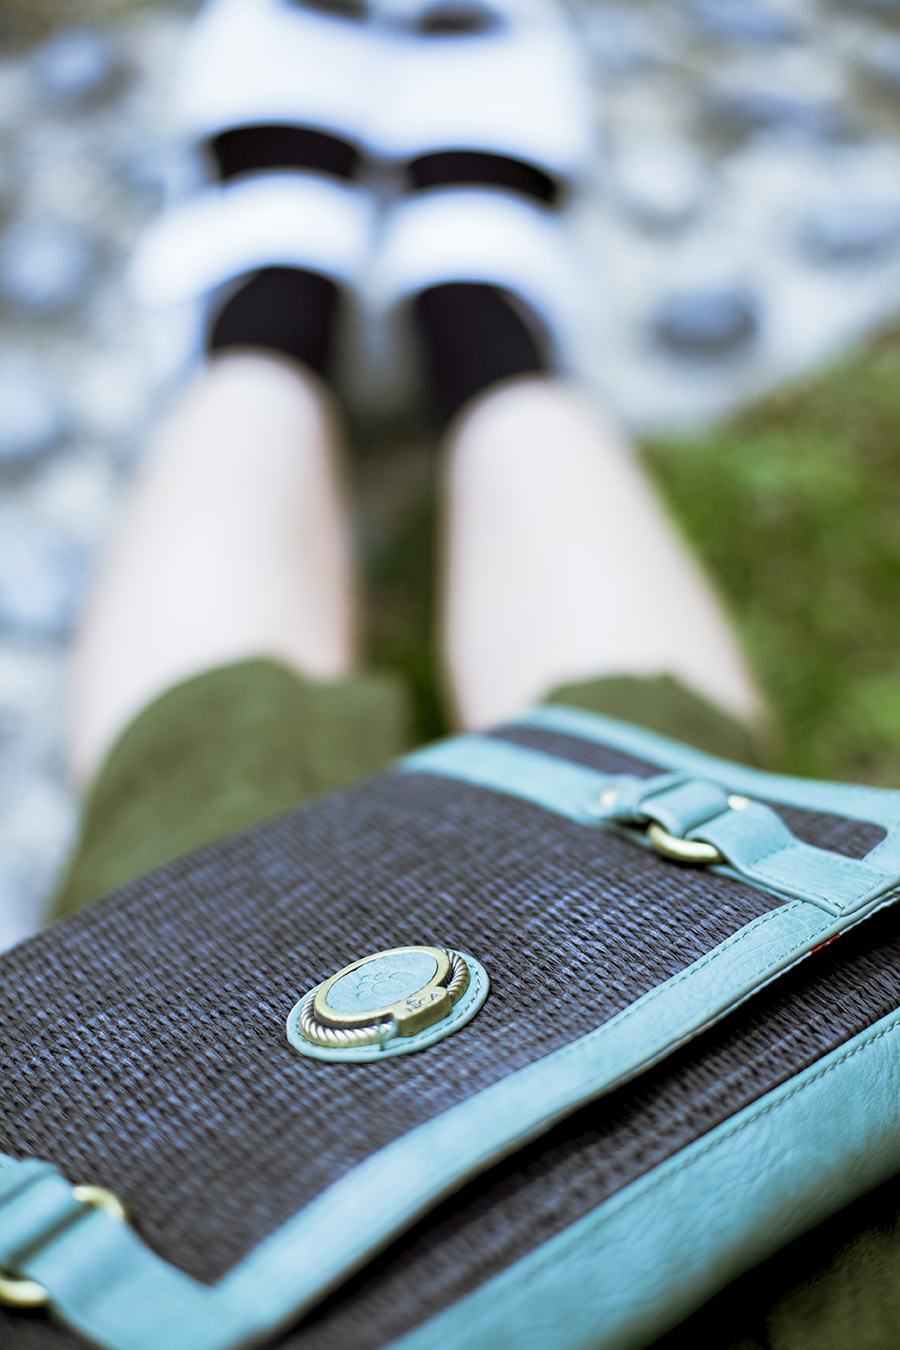 Green outfit: Nica green clutch.